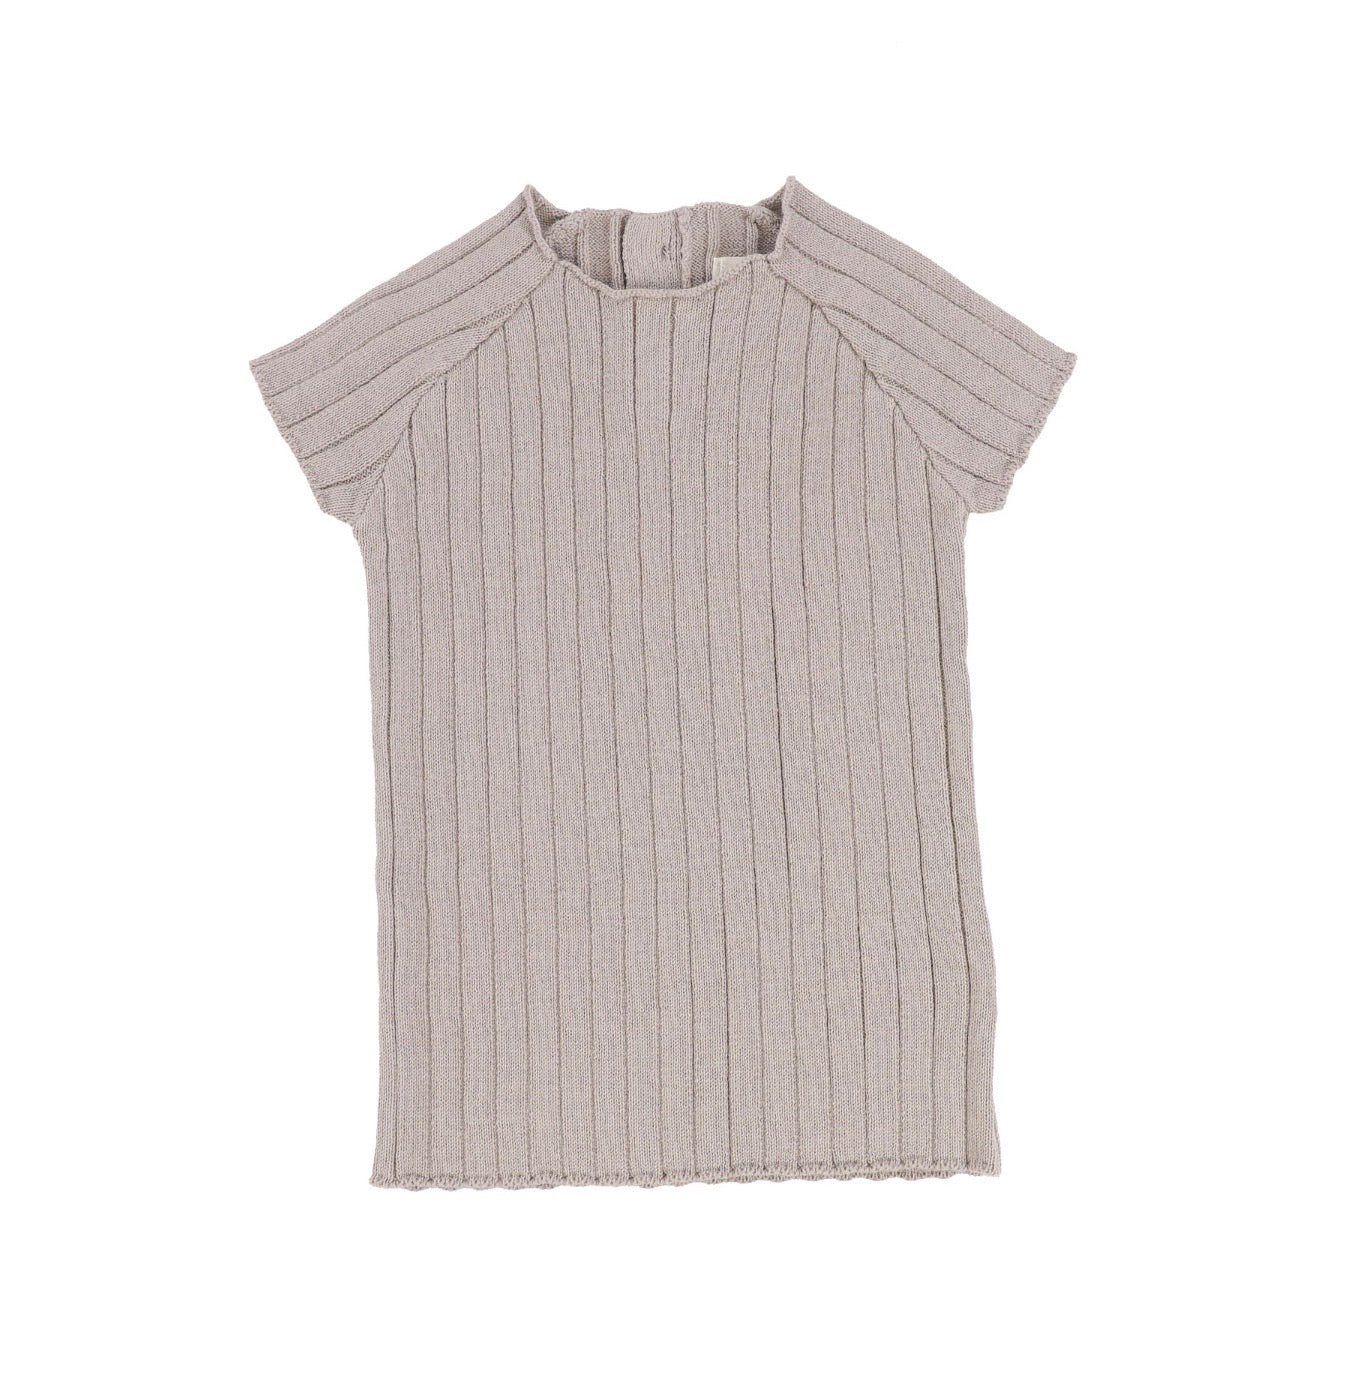 Taupe Short Sleeve Knit Sweater